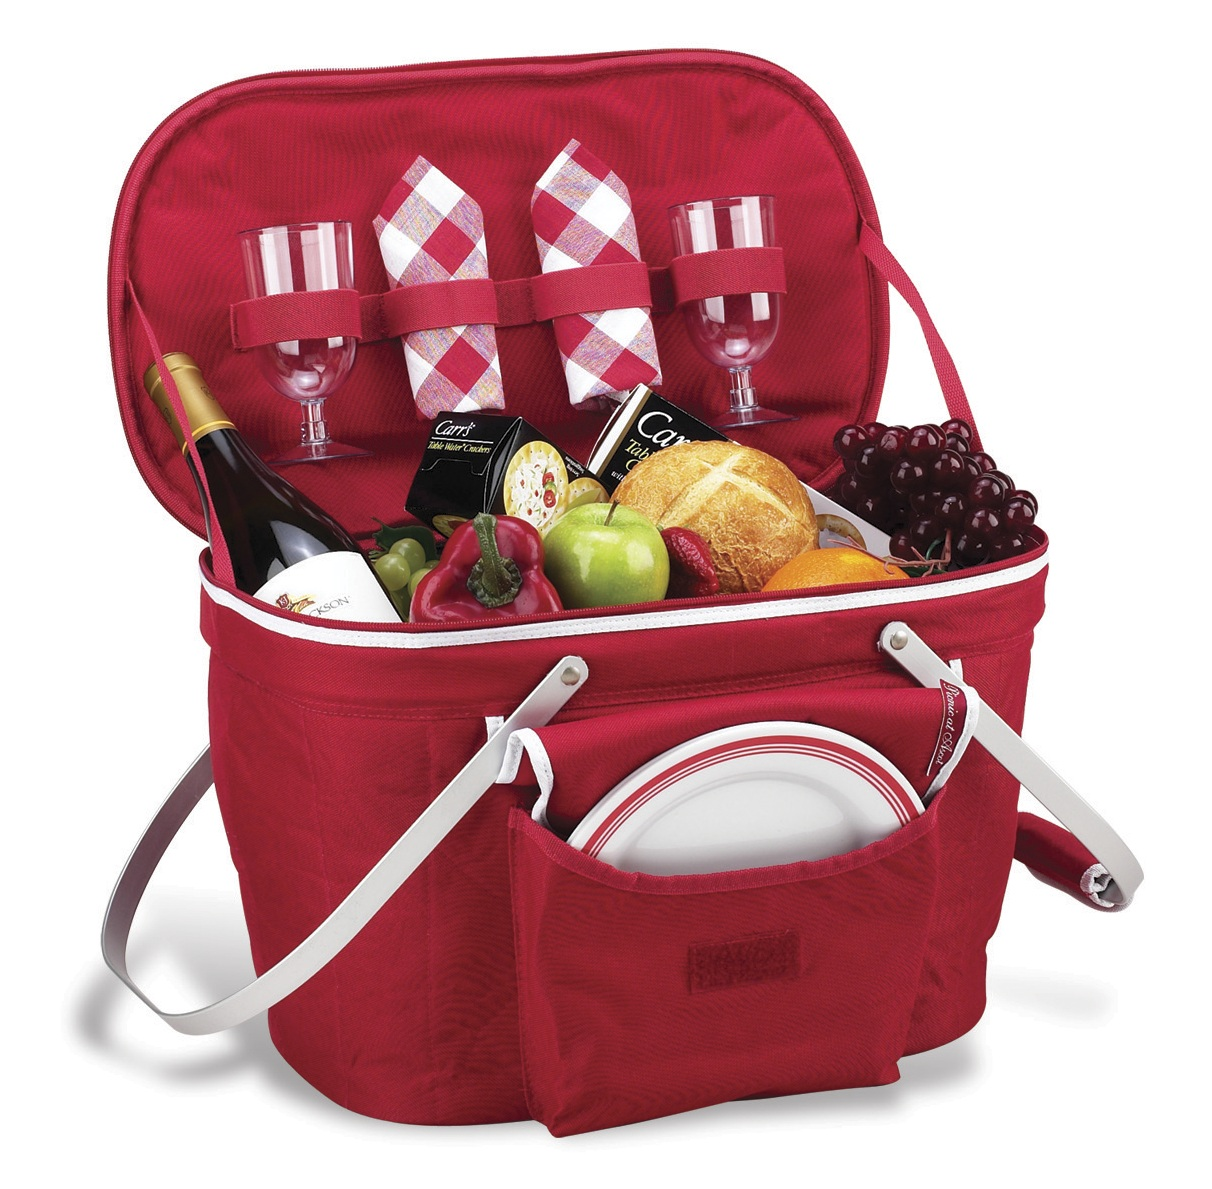 Picnic basket for 2 canada : Party picnic collapsible insulated basket for two